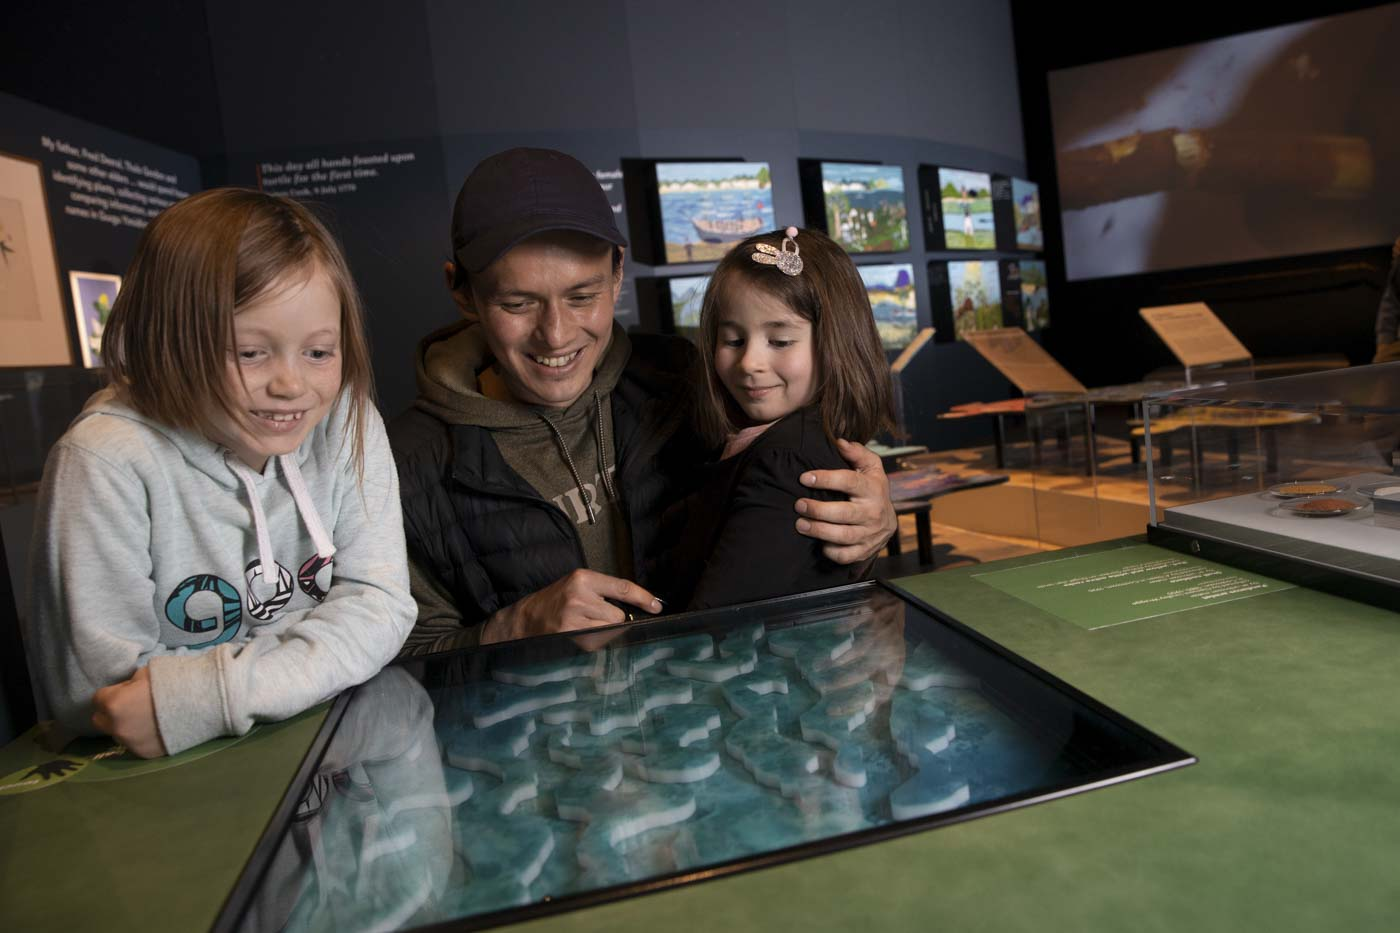 A man and two young girls behind a museum exhibit consisting of a blue-green reef puzzle. - click to view larger image